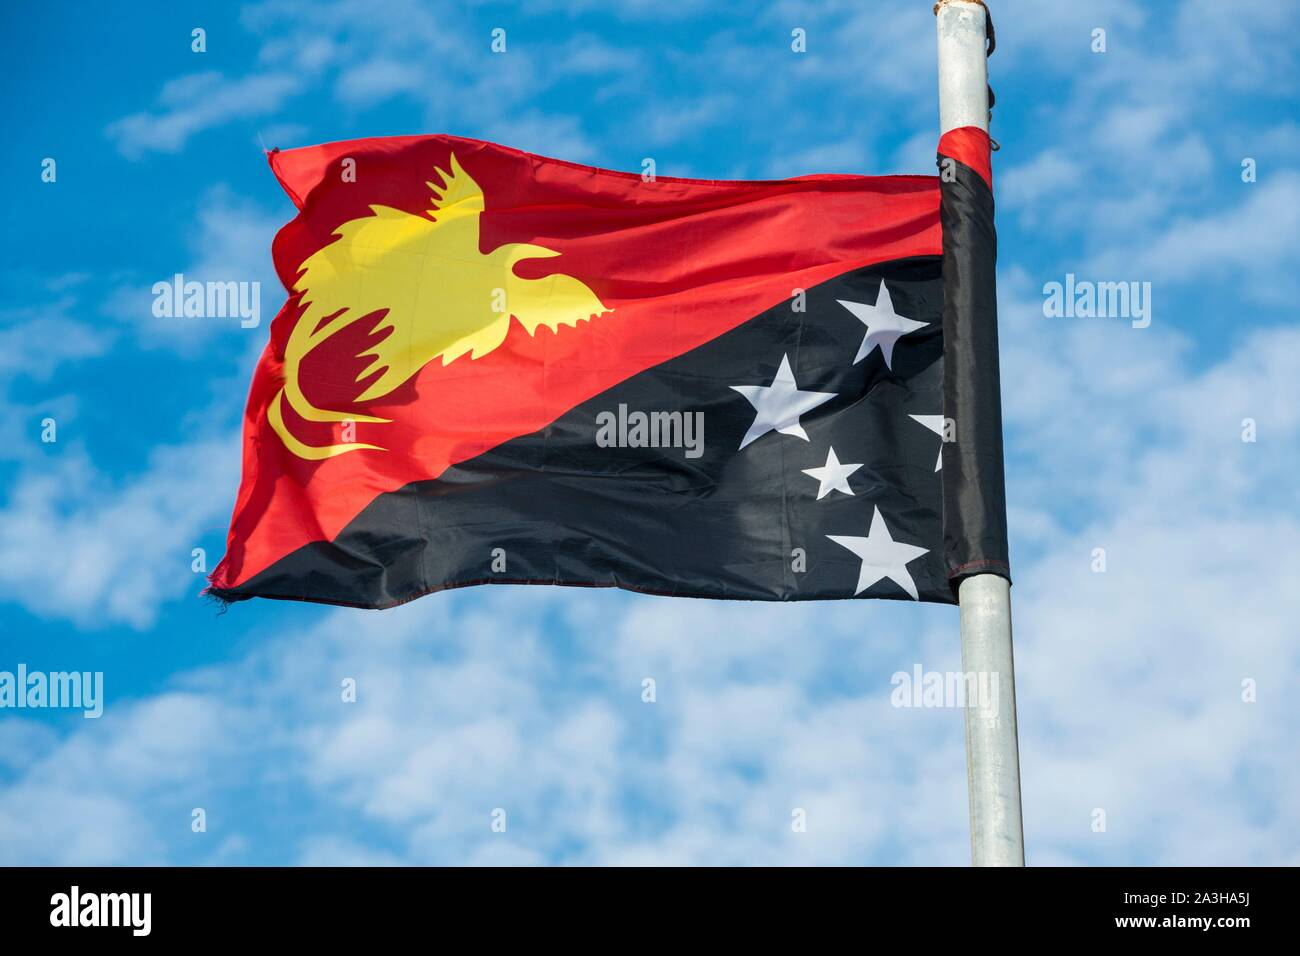 Papua-New-Guinea, Gulf Papua area, National Capital District area, Port Moresby town, official flag of the country Stock Photo